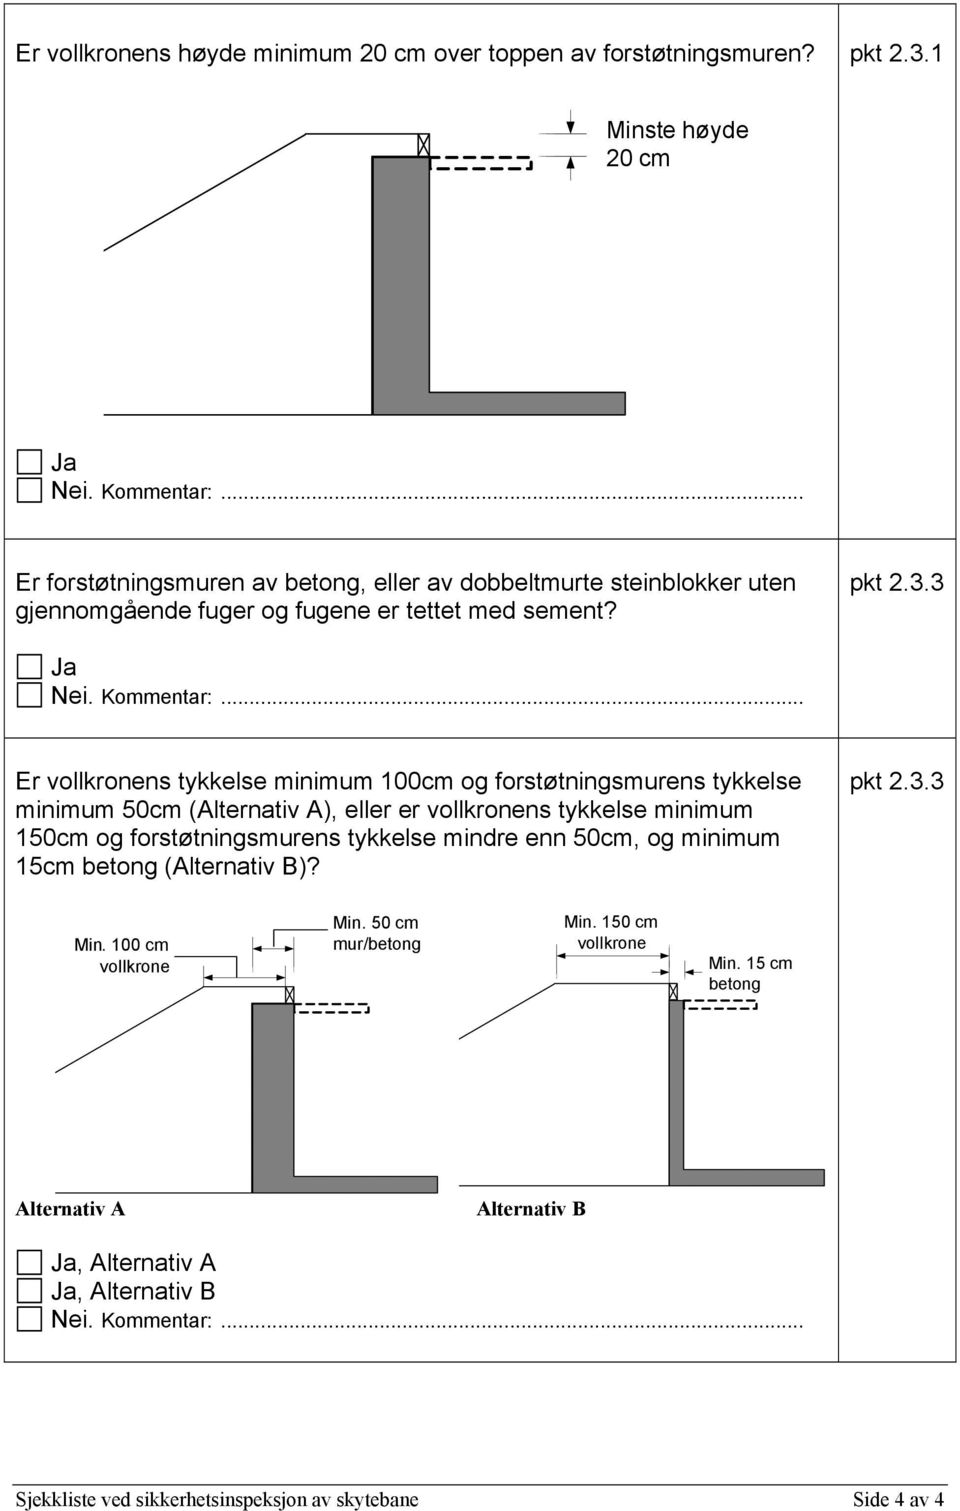 Er vollkronens tykkelse minimum 100cm og forstøtningsmurens tykkelse minimum 50cm (Alternativ A), eller er vollkronens tykkelse minimum 150cm og